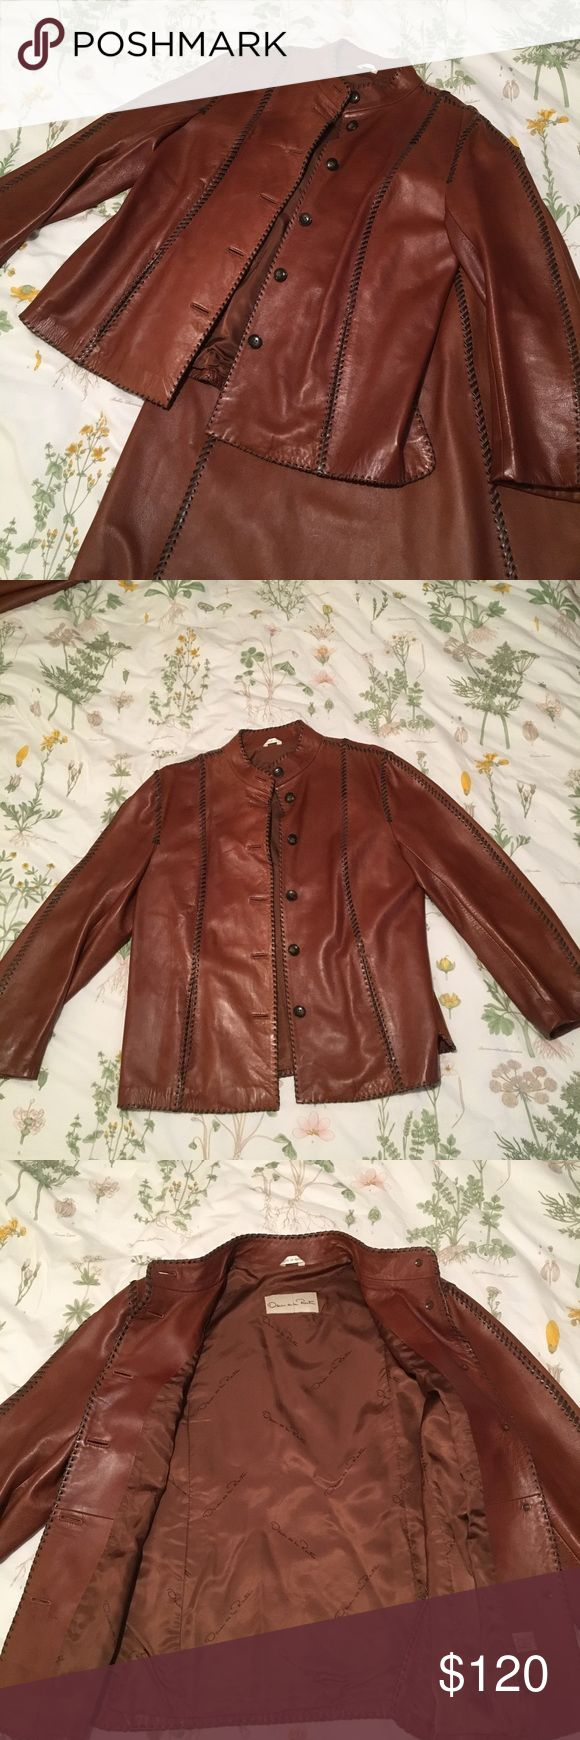 Oscar de la Renta Leather 2 piece skirt/blazer set Beautiful vintage Oscar de la Renta leather 2 piece suit, (skirt and blazer). Buttery soft leather, made in Spain. Perfect condition. Oscar de la Renta Skirts A-Line or Full